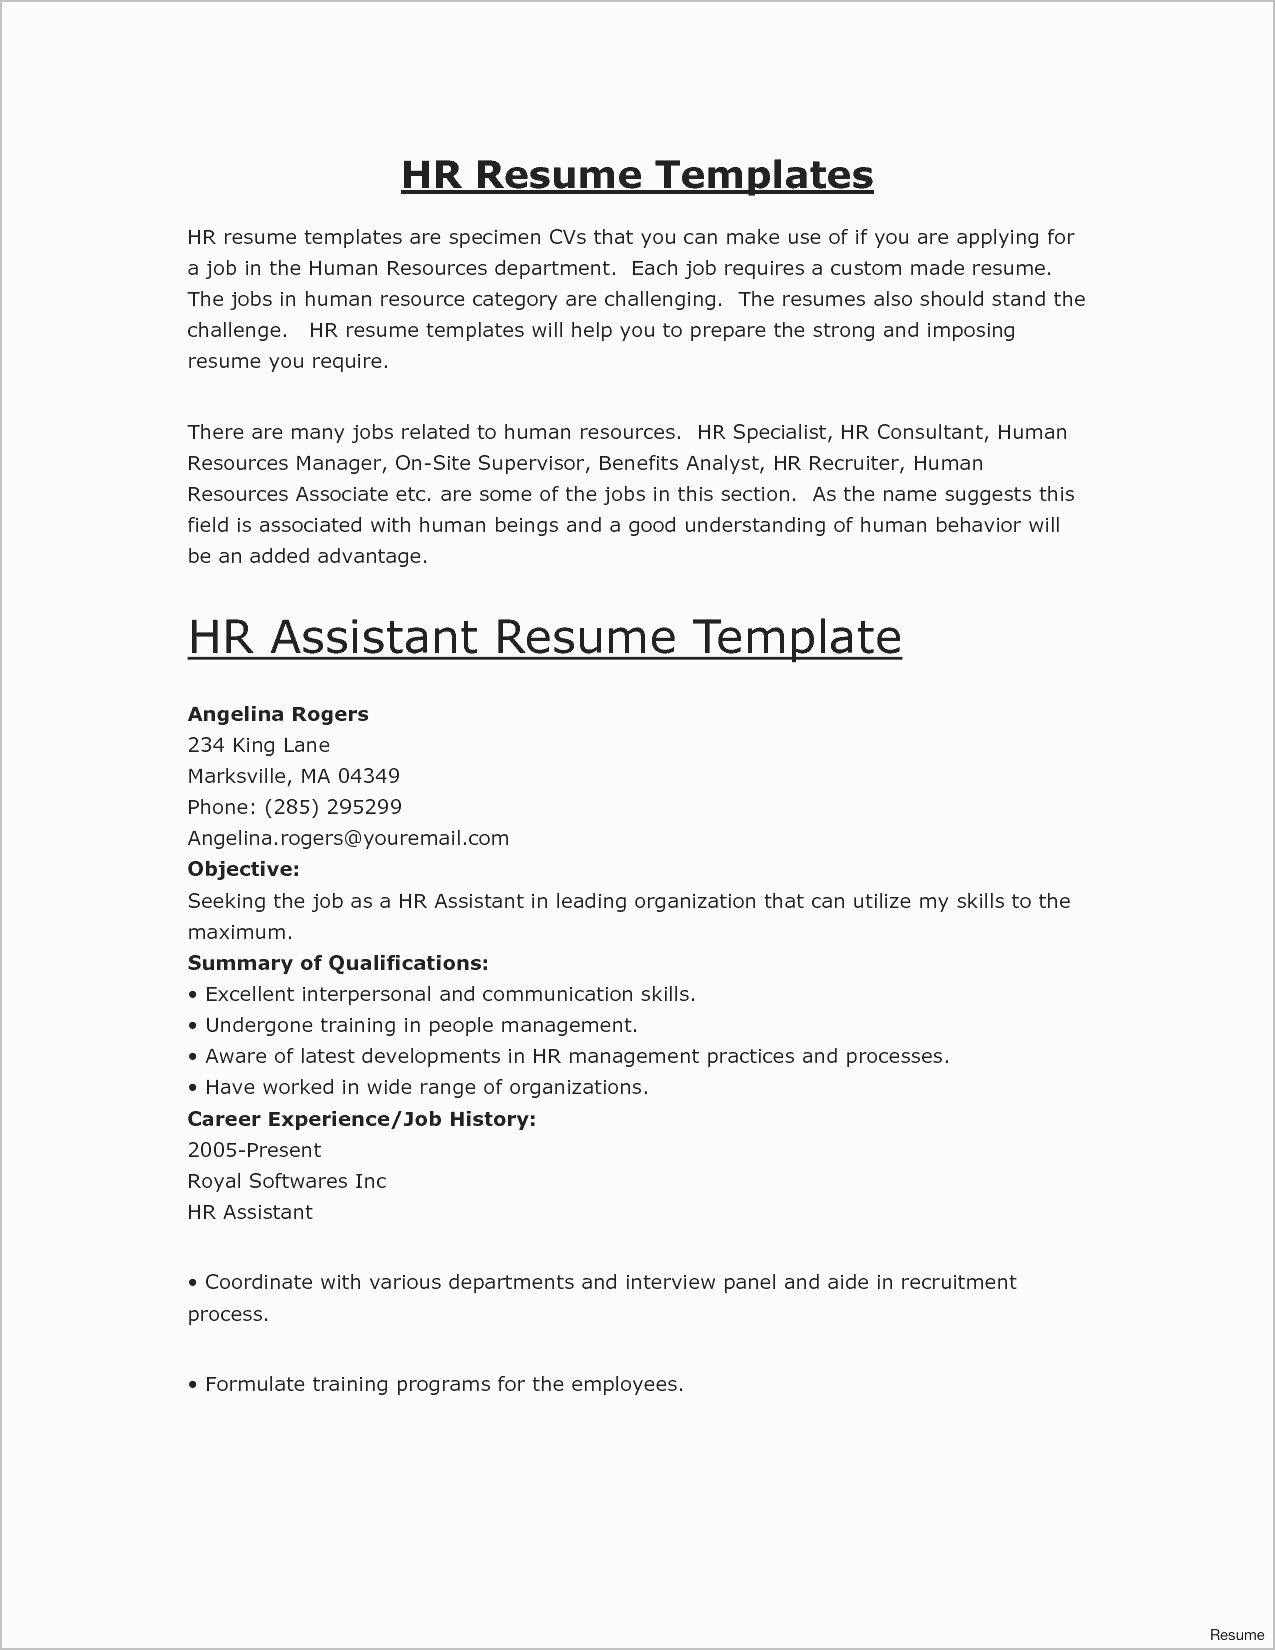 Resume For Sales Positions Luxury Resume Templates For Sales Positions New Awesome How Can I Do A